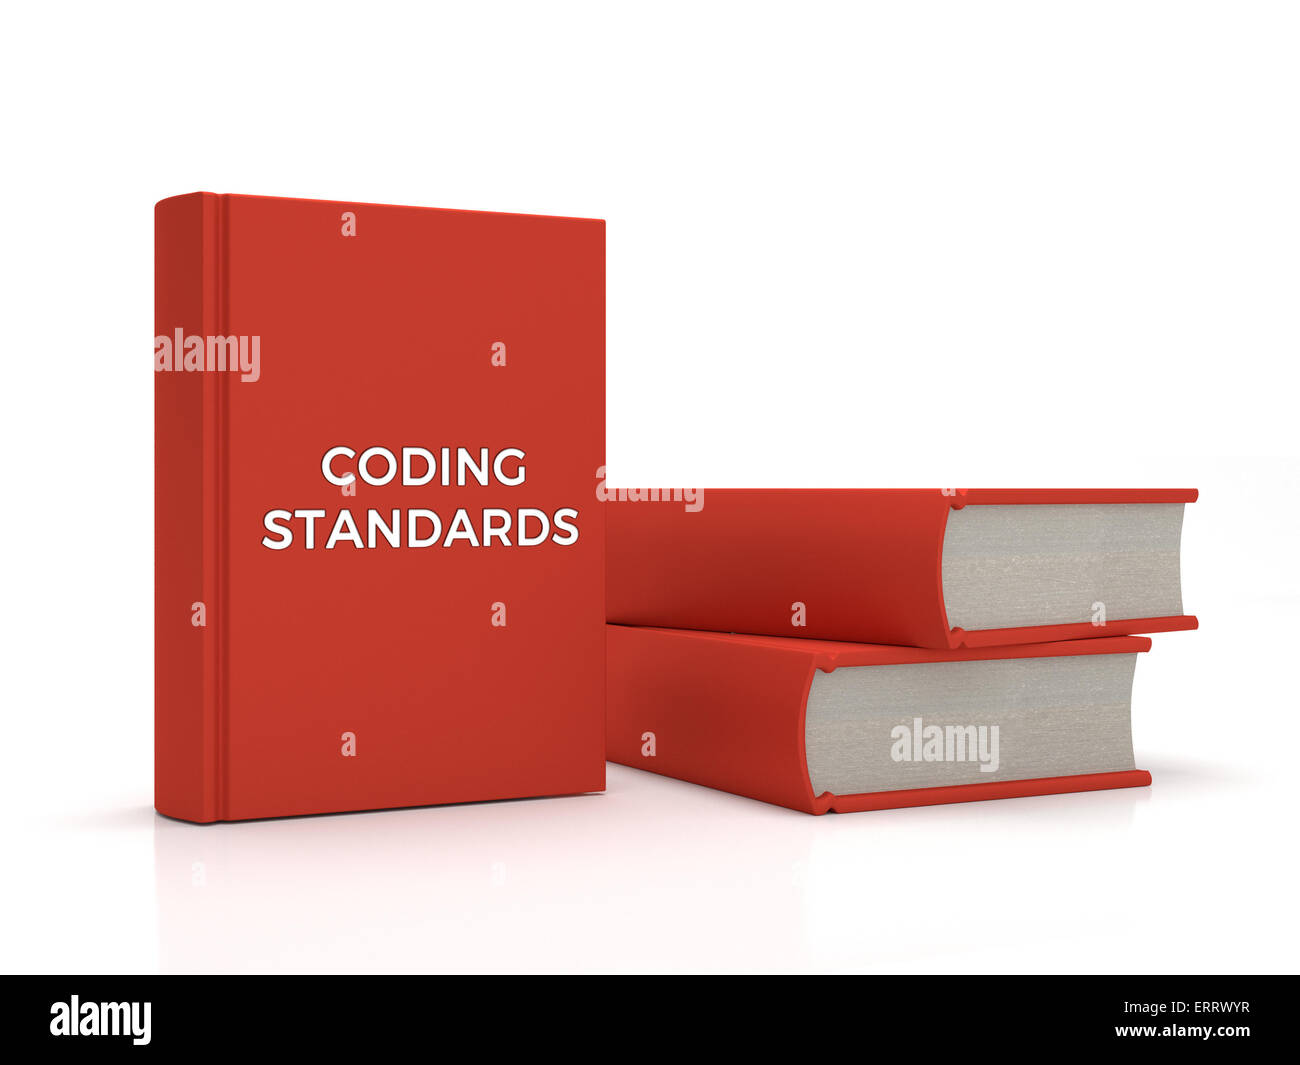 3 books containing the title 'Coding Standards' - Stock Image